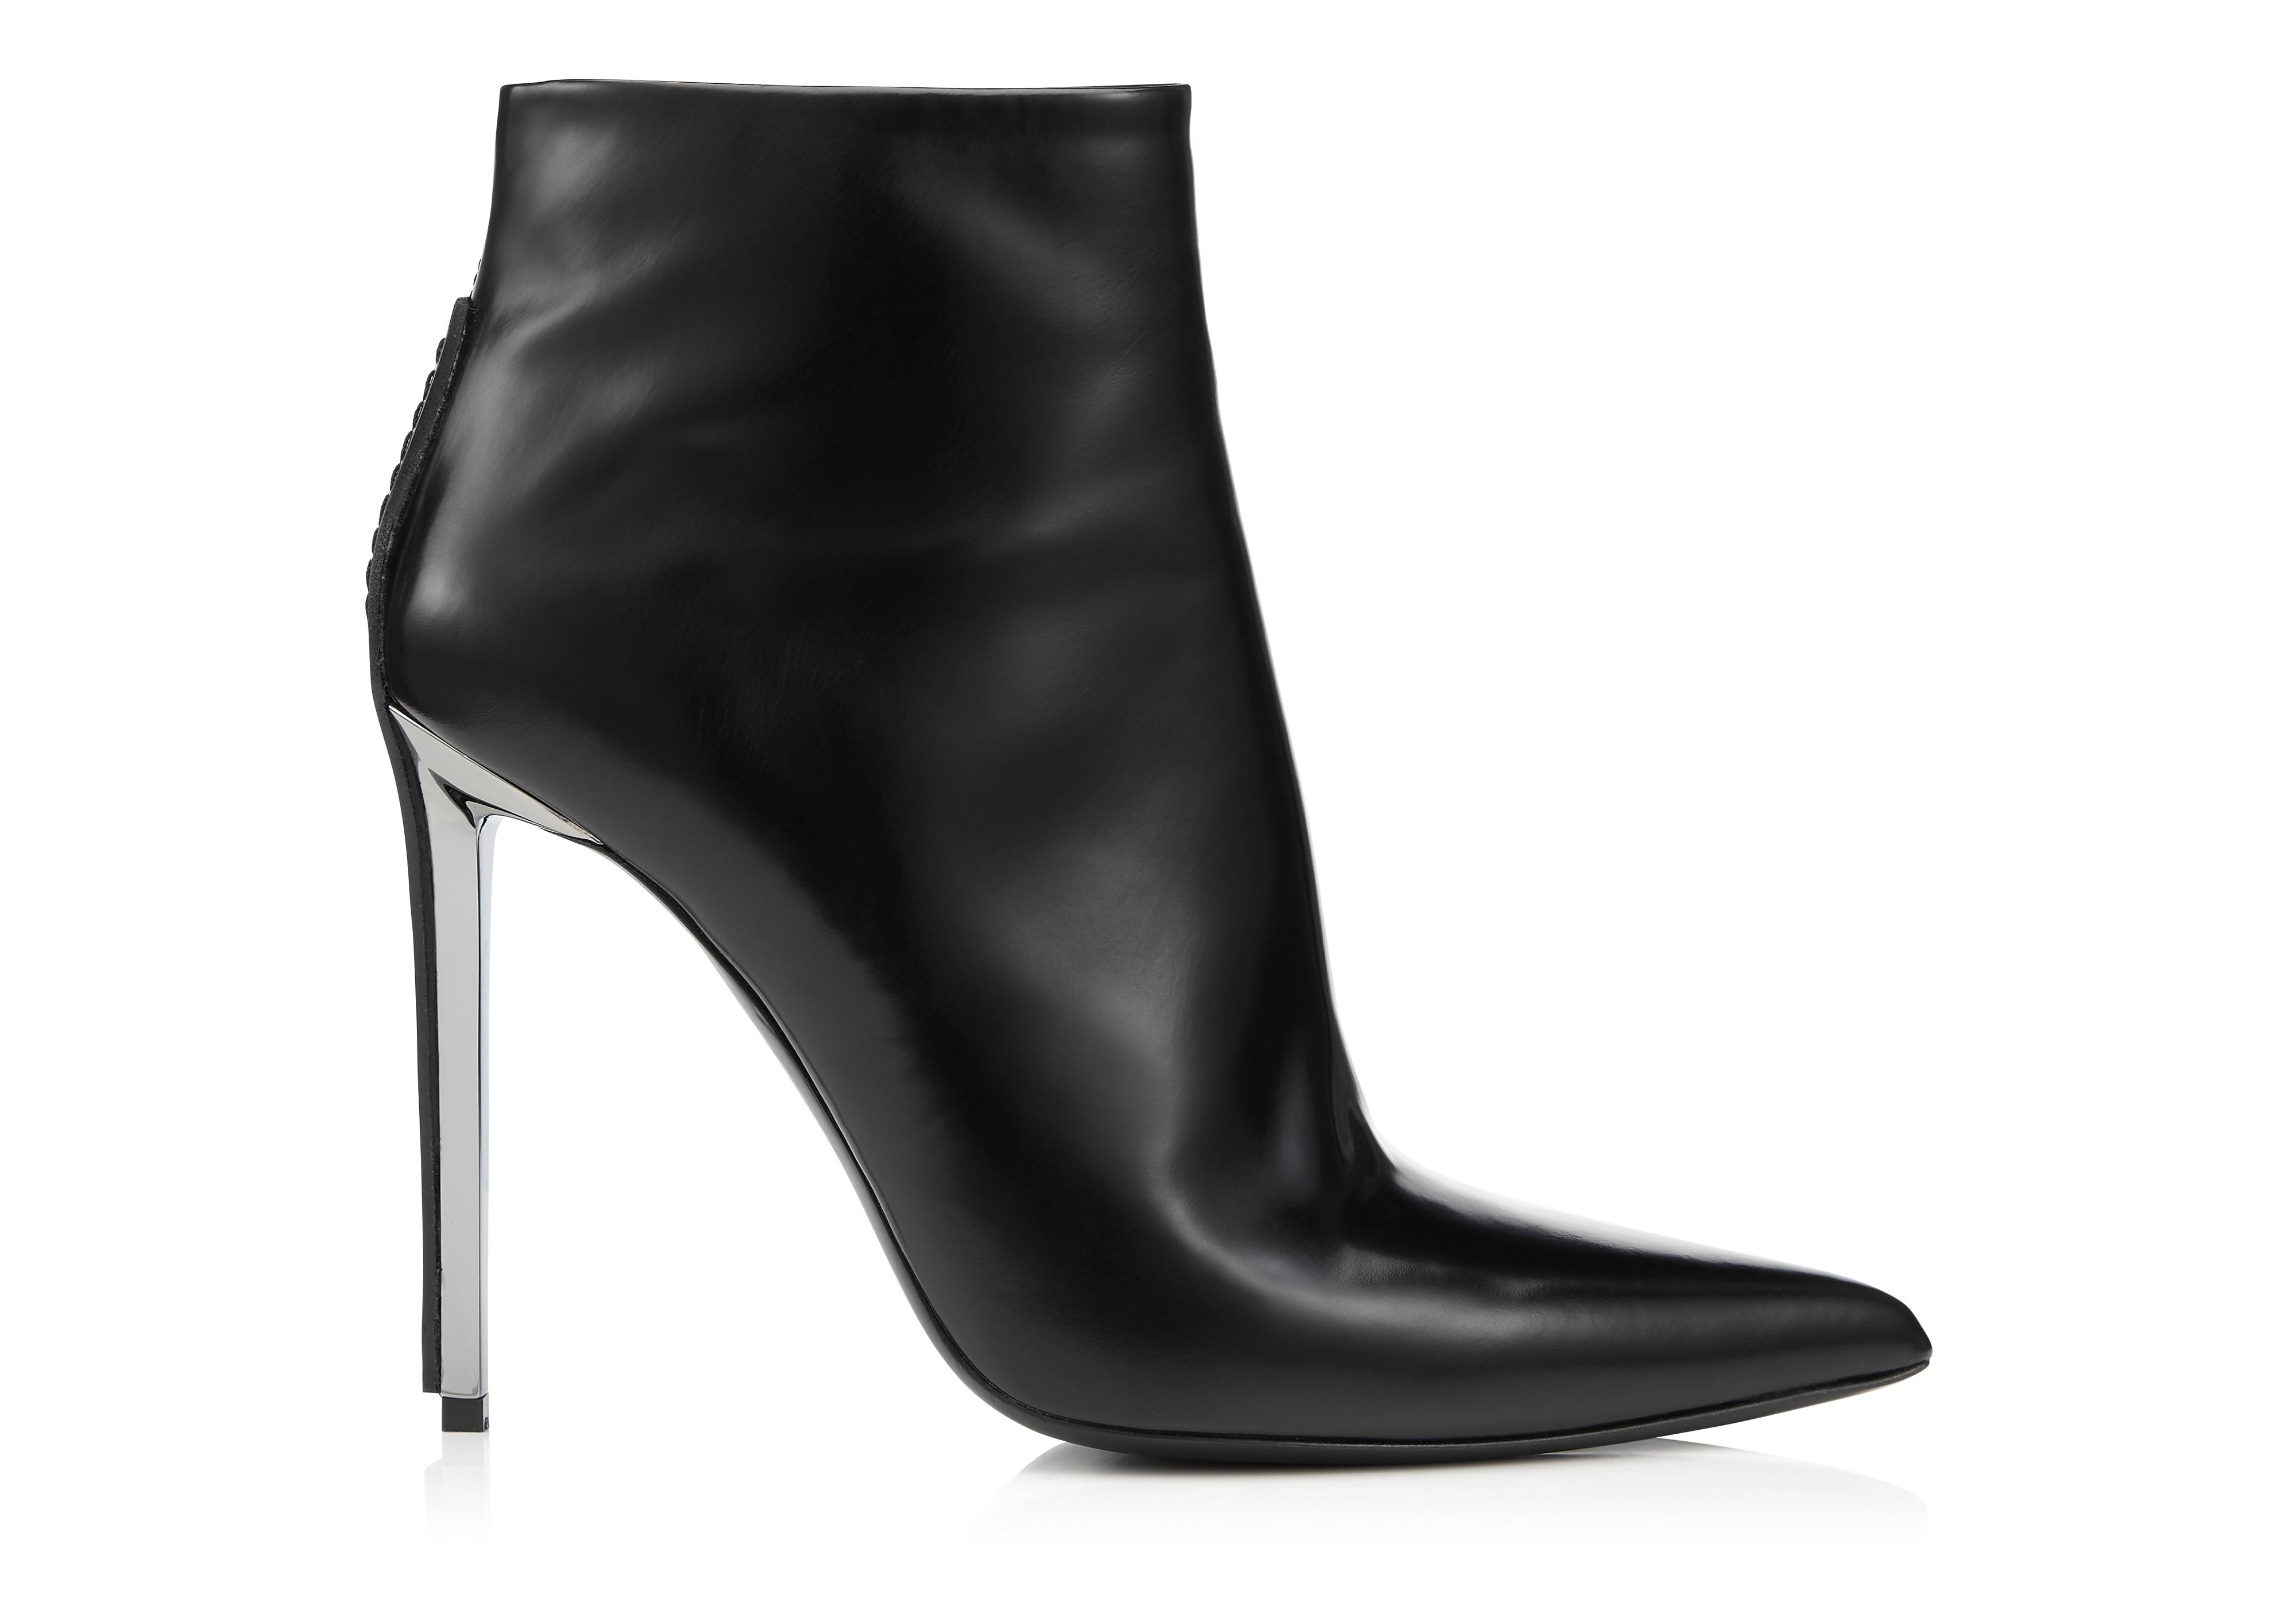 METAL HEEL ANKLE BOOT A thumbnail